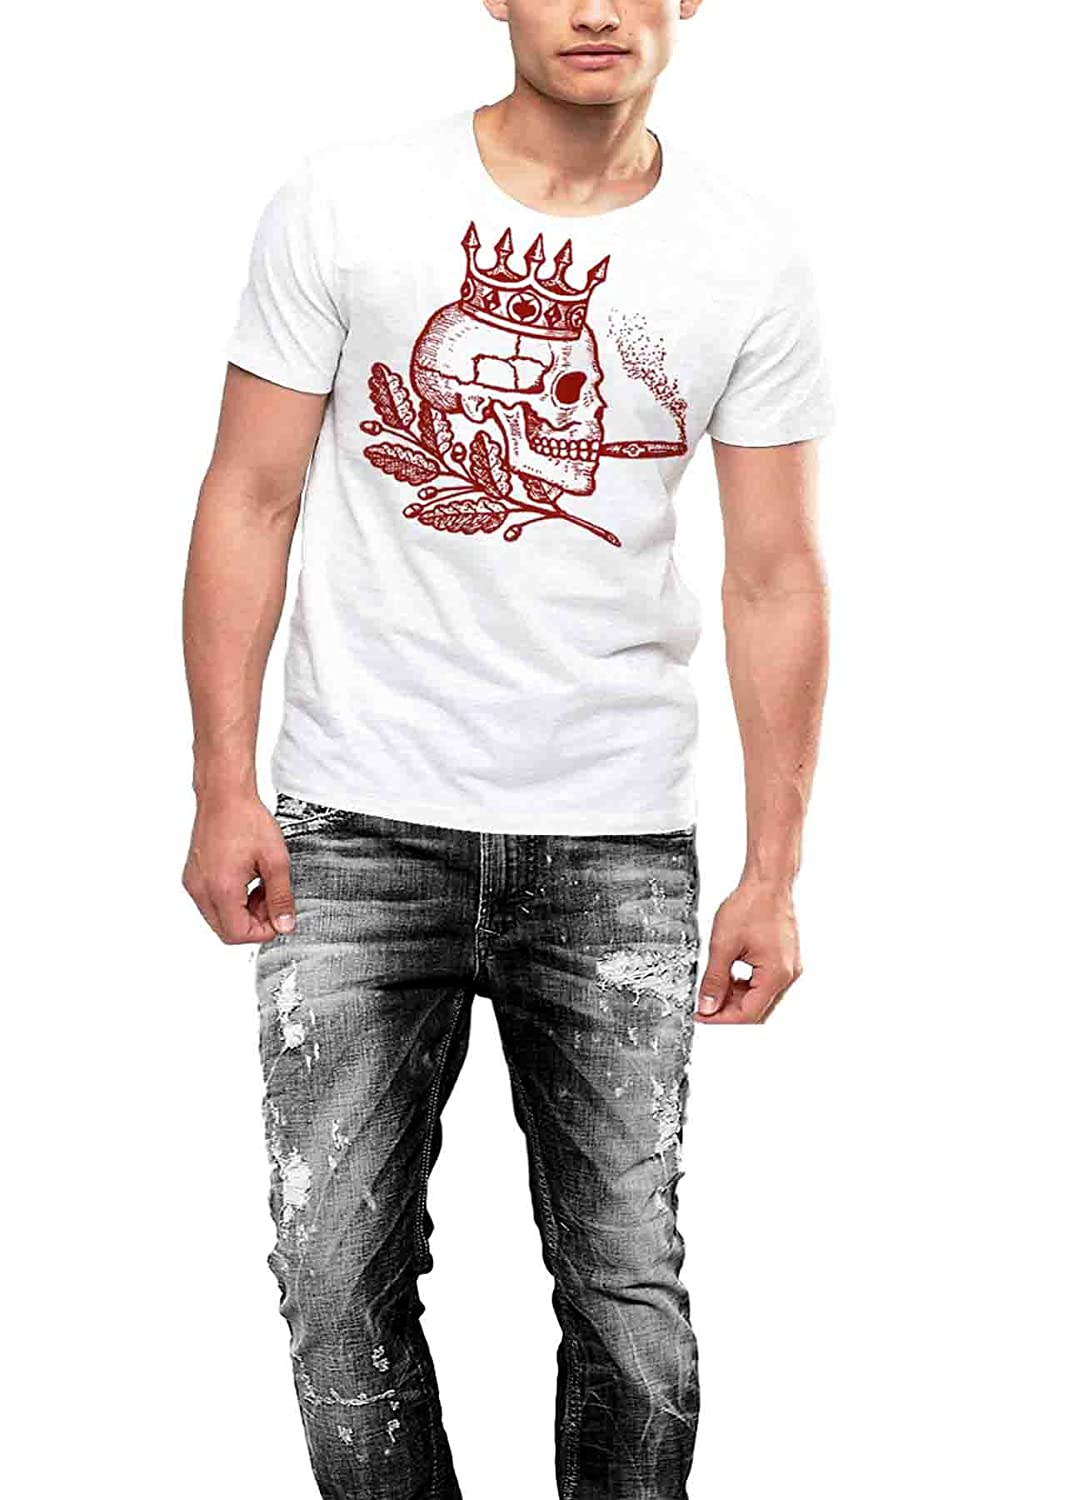 Skull Tattoo T-shirt Wearing A Crown And Smoking A Cigar